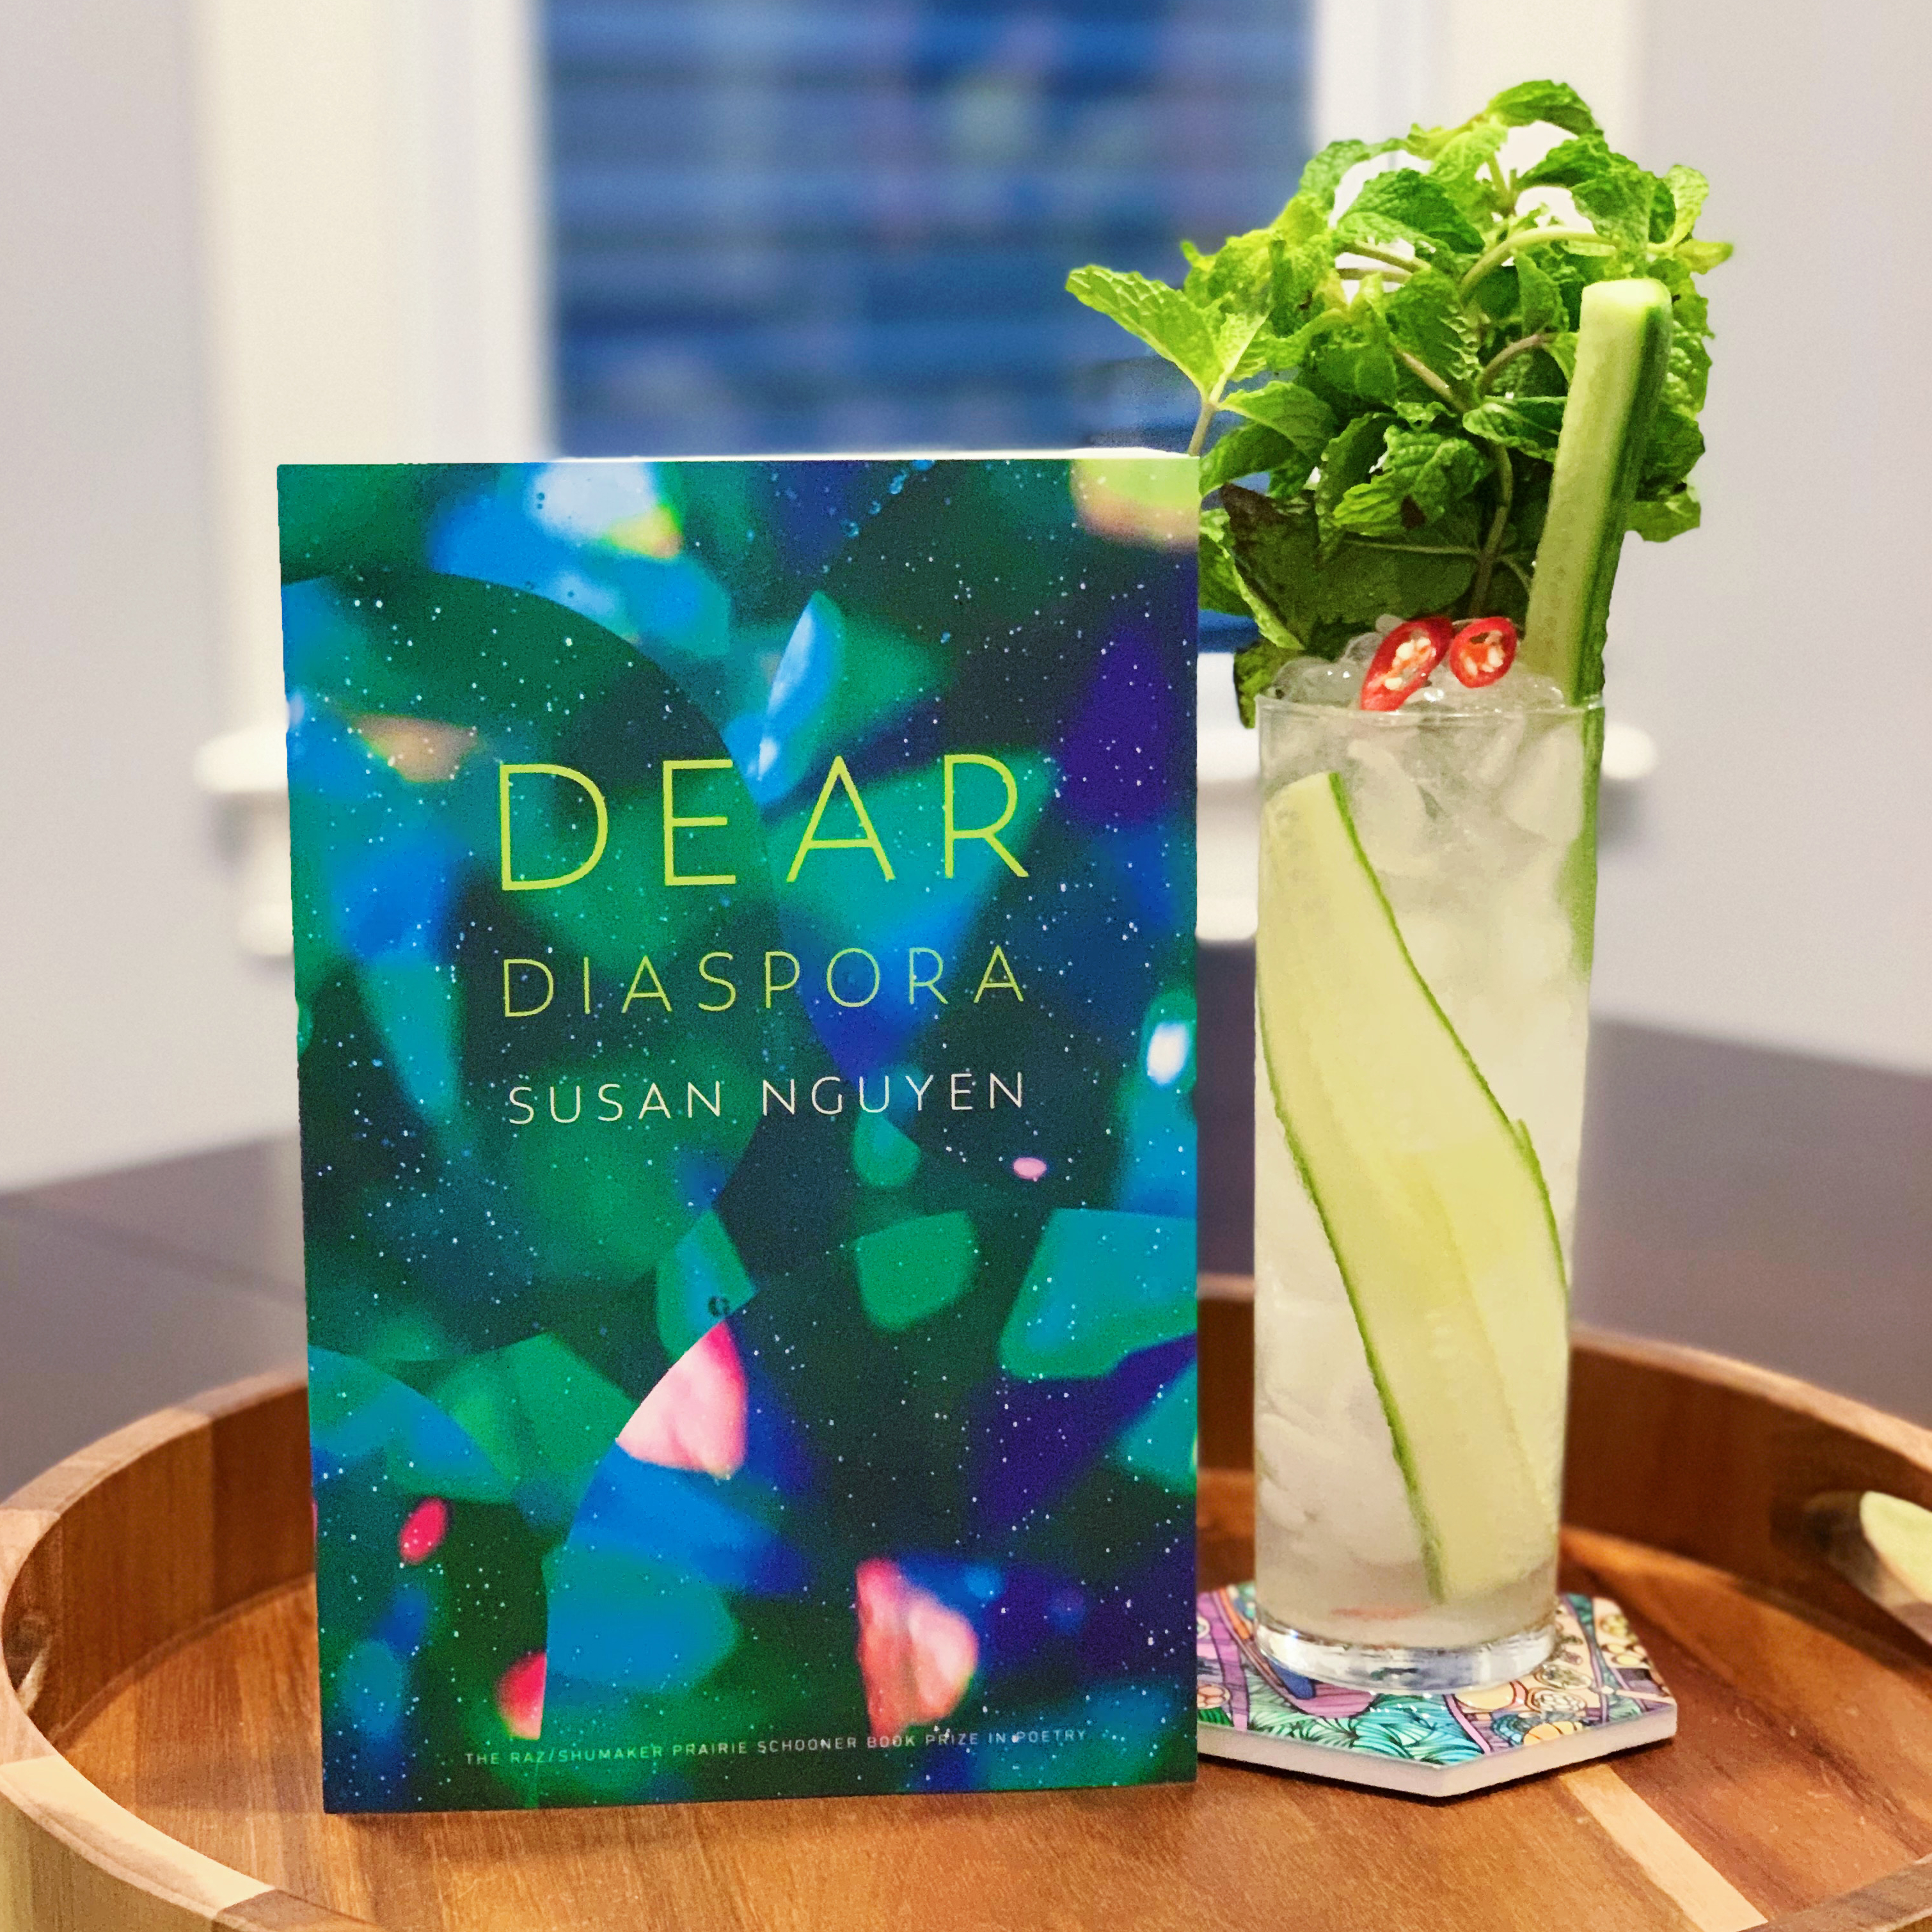 book titled Dear Diaspora, propped next to a cocktail in a tall glass garnished with mint, cucumber, and Thai chili pepper